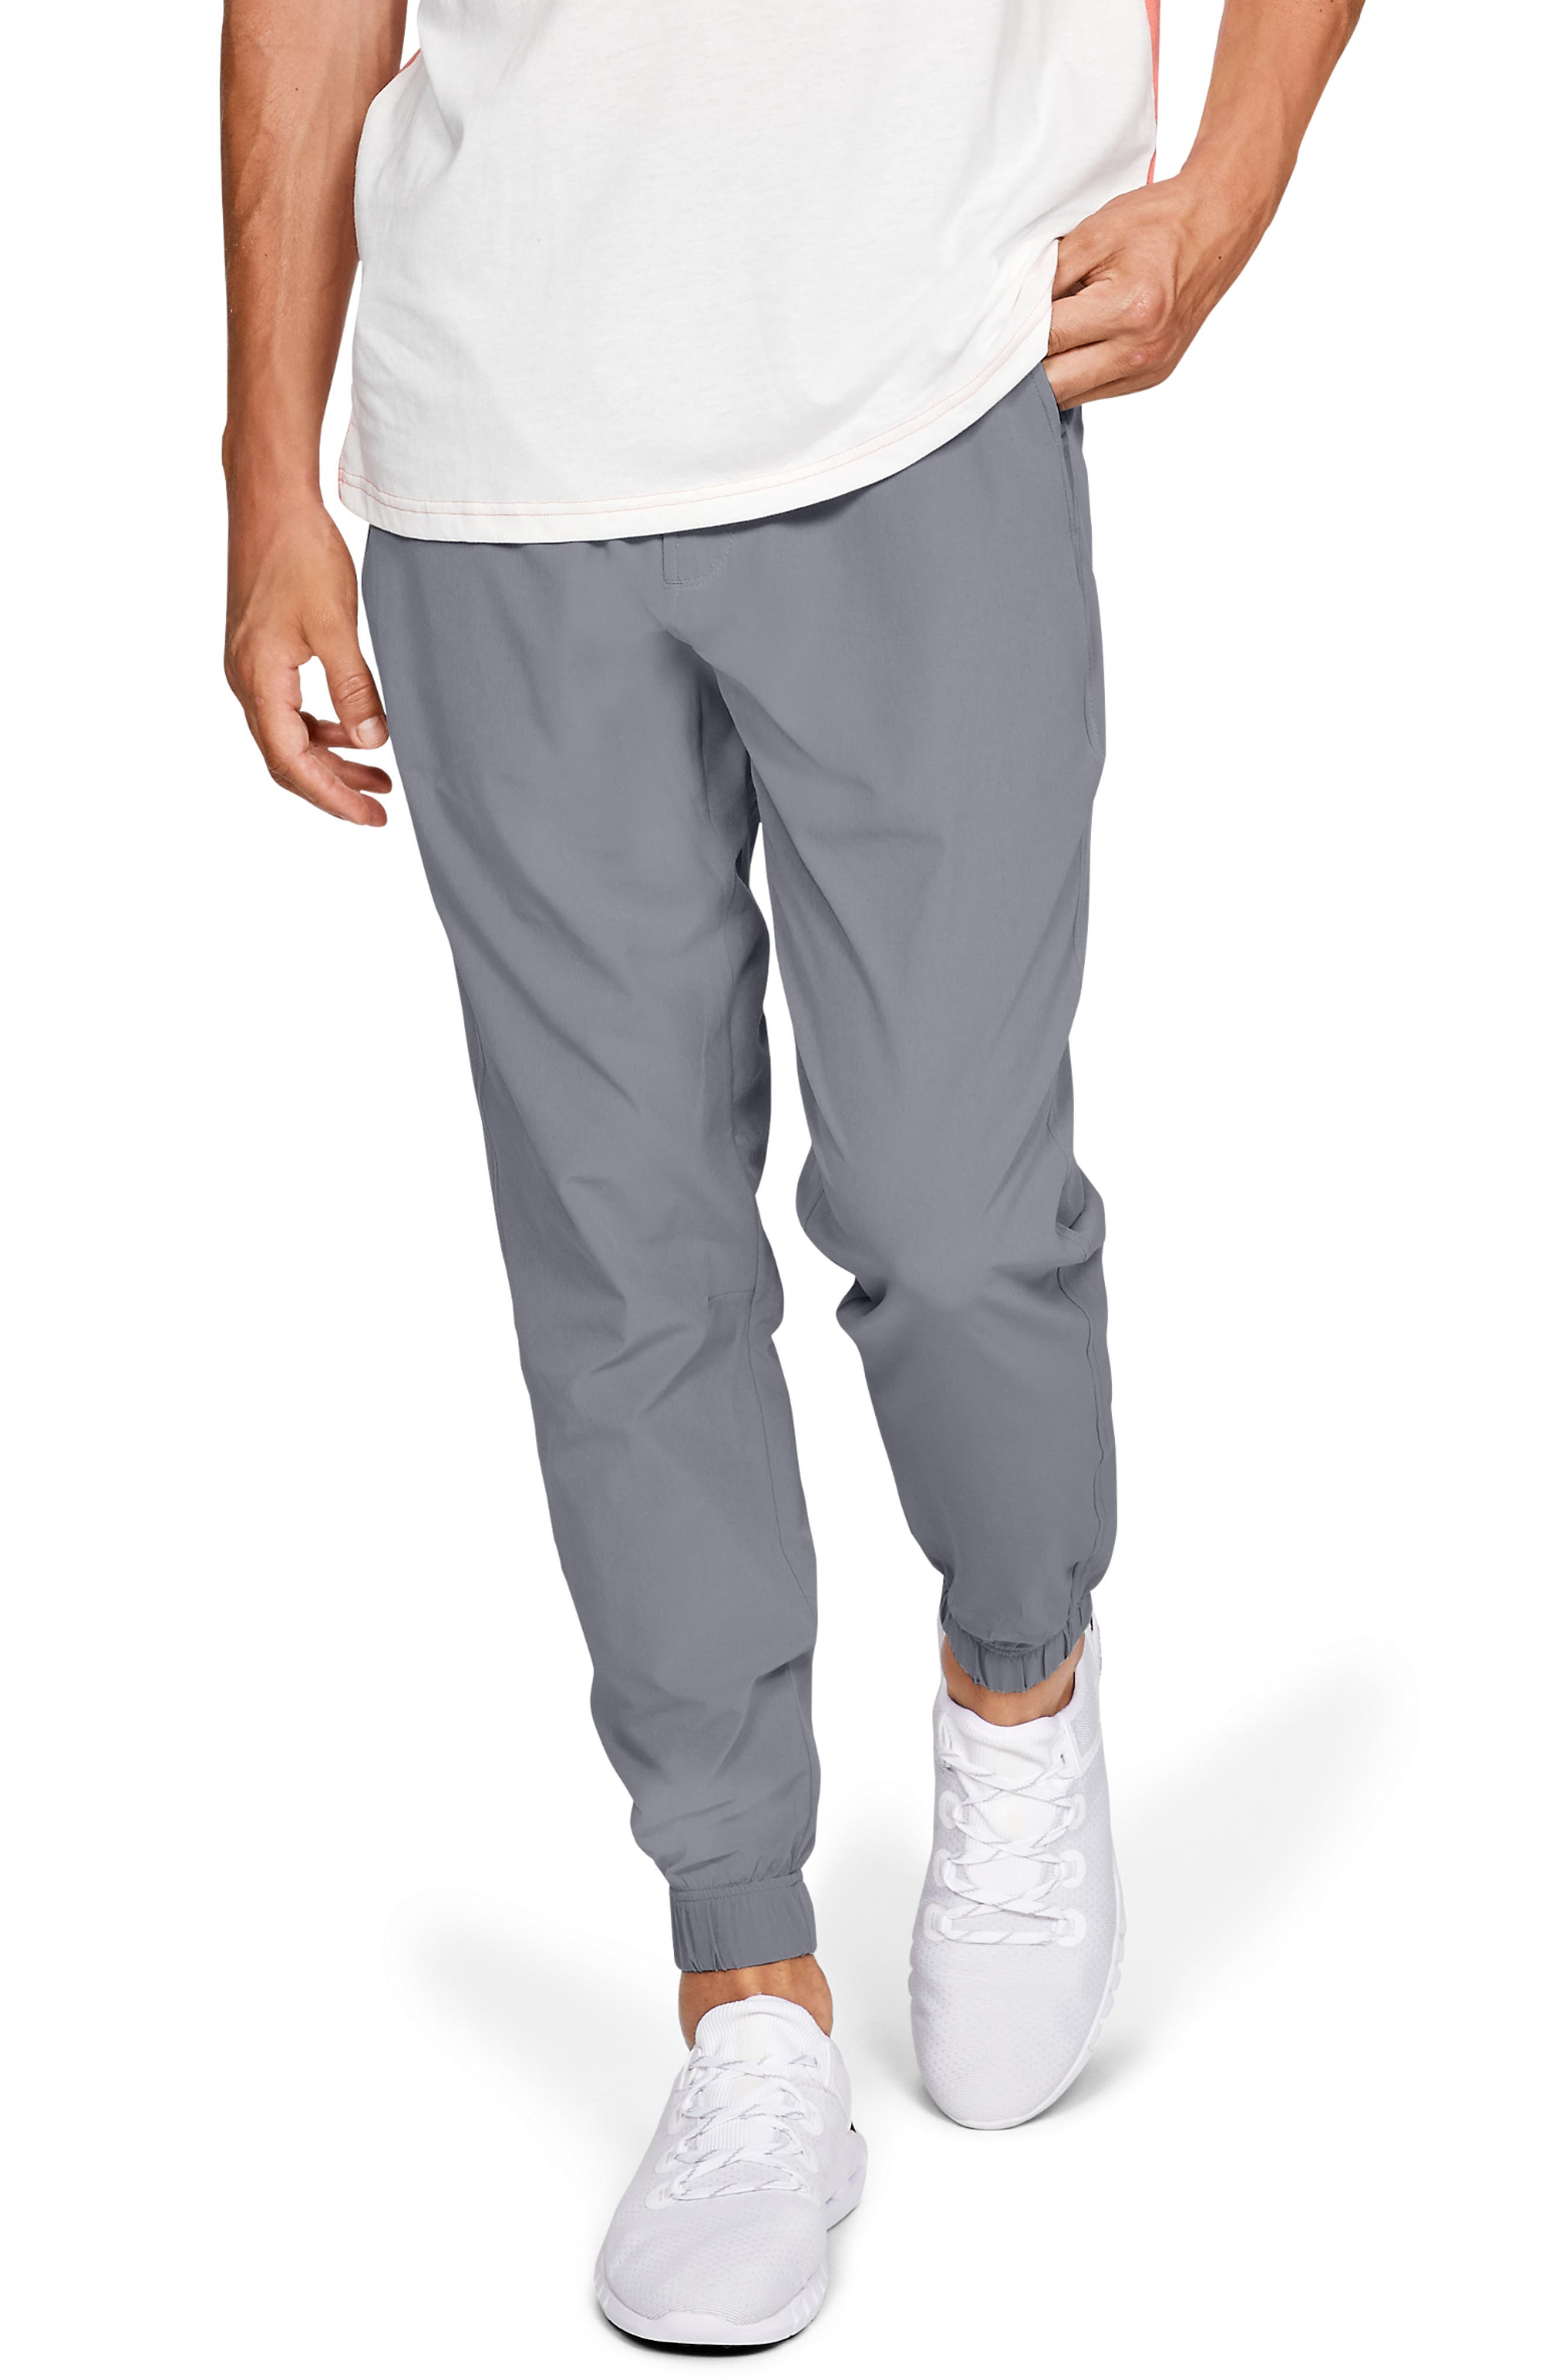 Men's Under Armour Spostyle Live-In Sweatpants